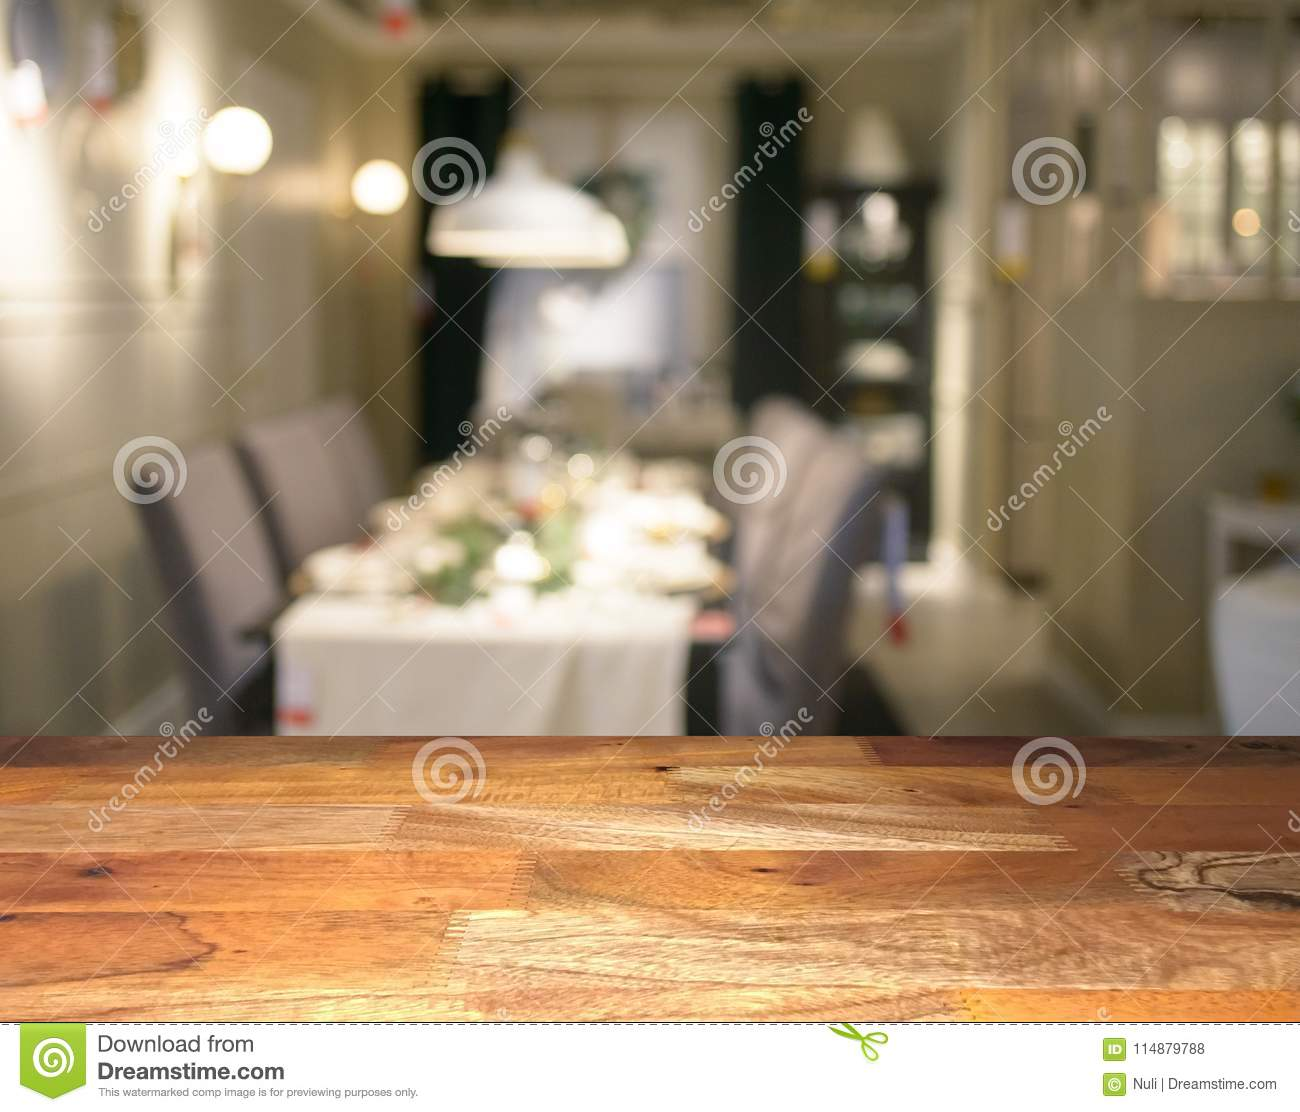 Stupendous Empty Wooden Display Table Top Front With Blurred Dining Download Free Architecture Designs Scobabritishbridgeorg